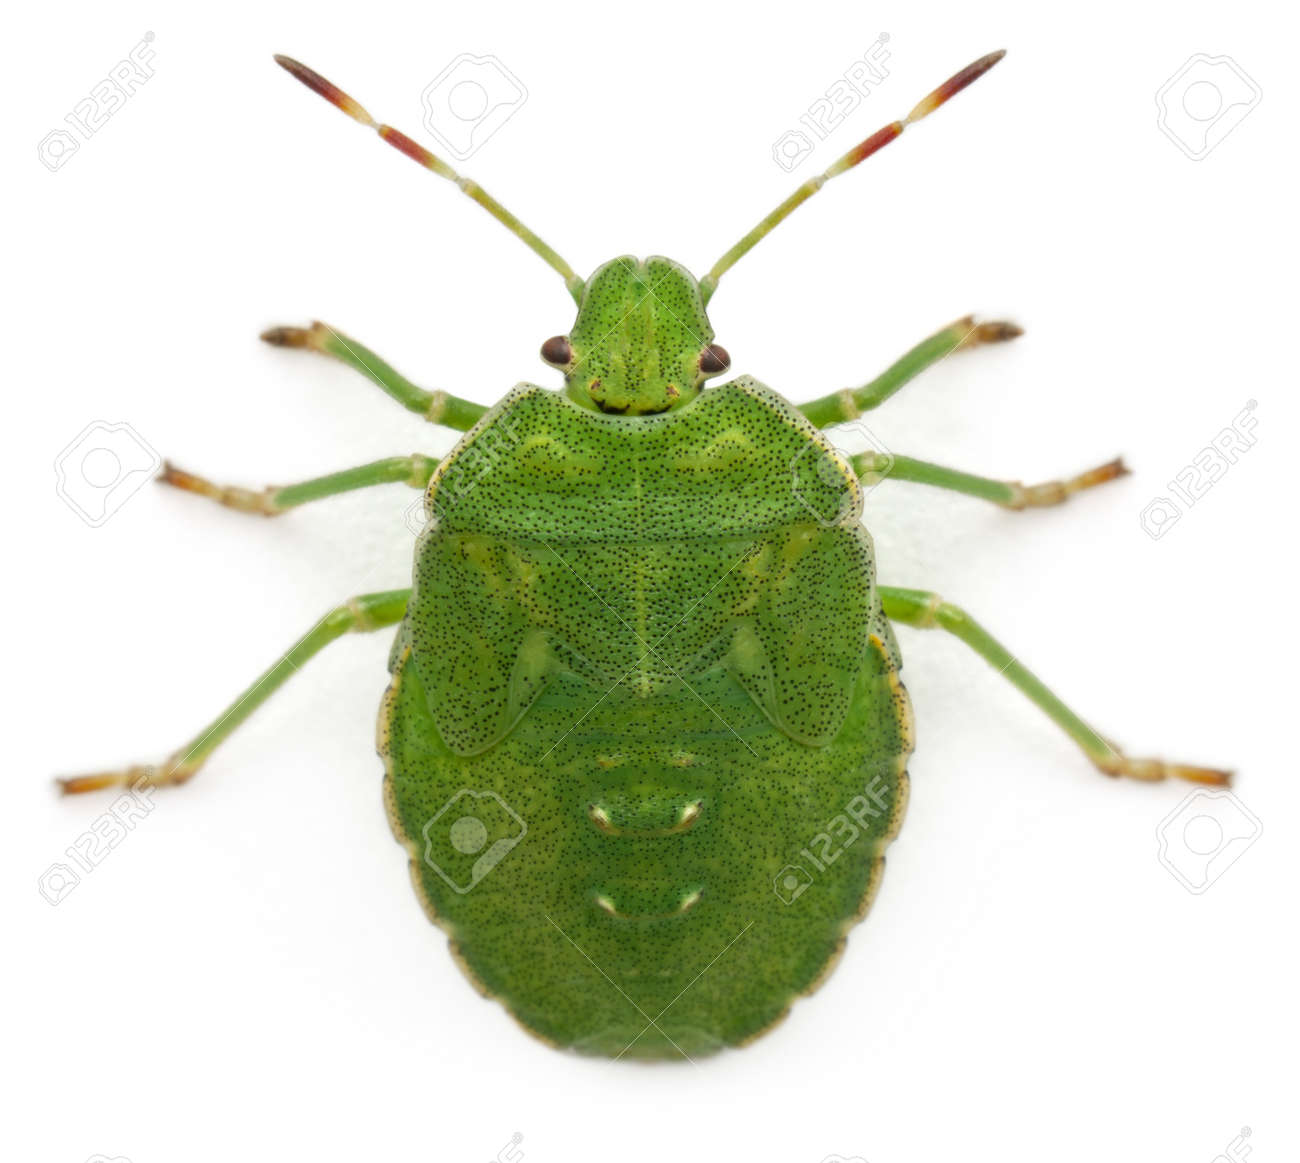 High angle view of a Green shield bug, Palomena prasina, in front of white background Stock Photo - 11187966